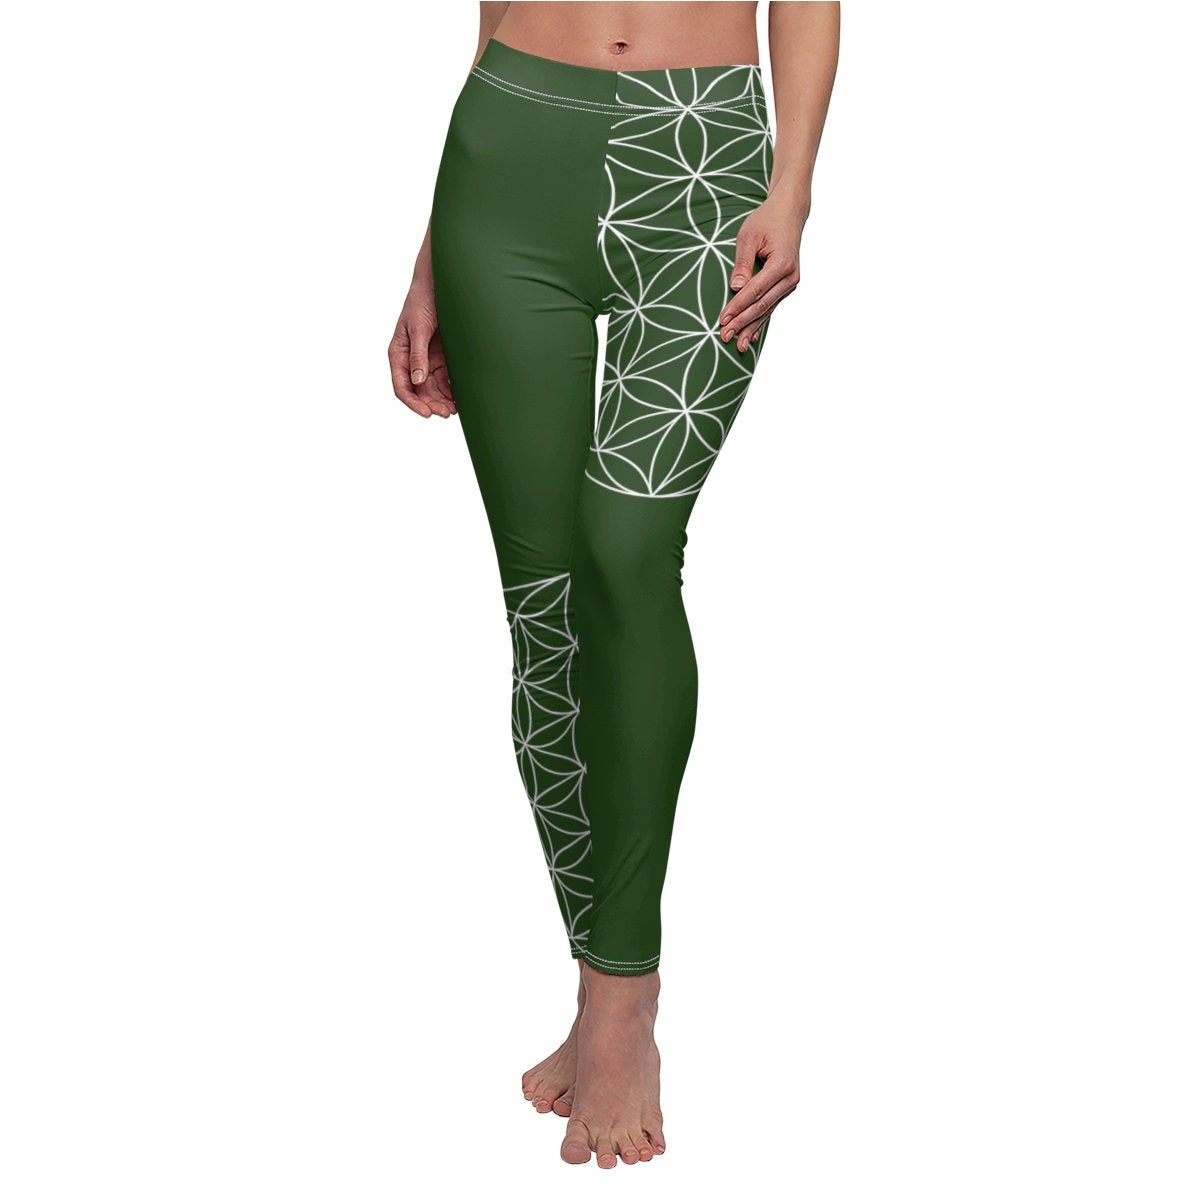 Flower Of Life Yoga Pants For Women Sacred Geometry Festival Clothing Womens Yoga Leggings Hippie Clothes Festival Pants Hapava